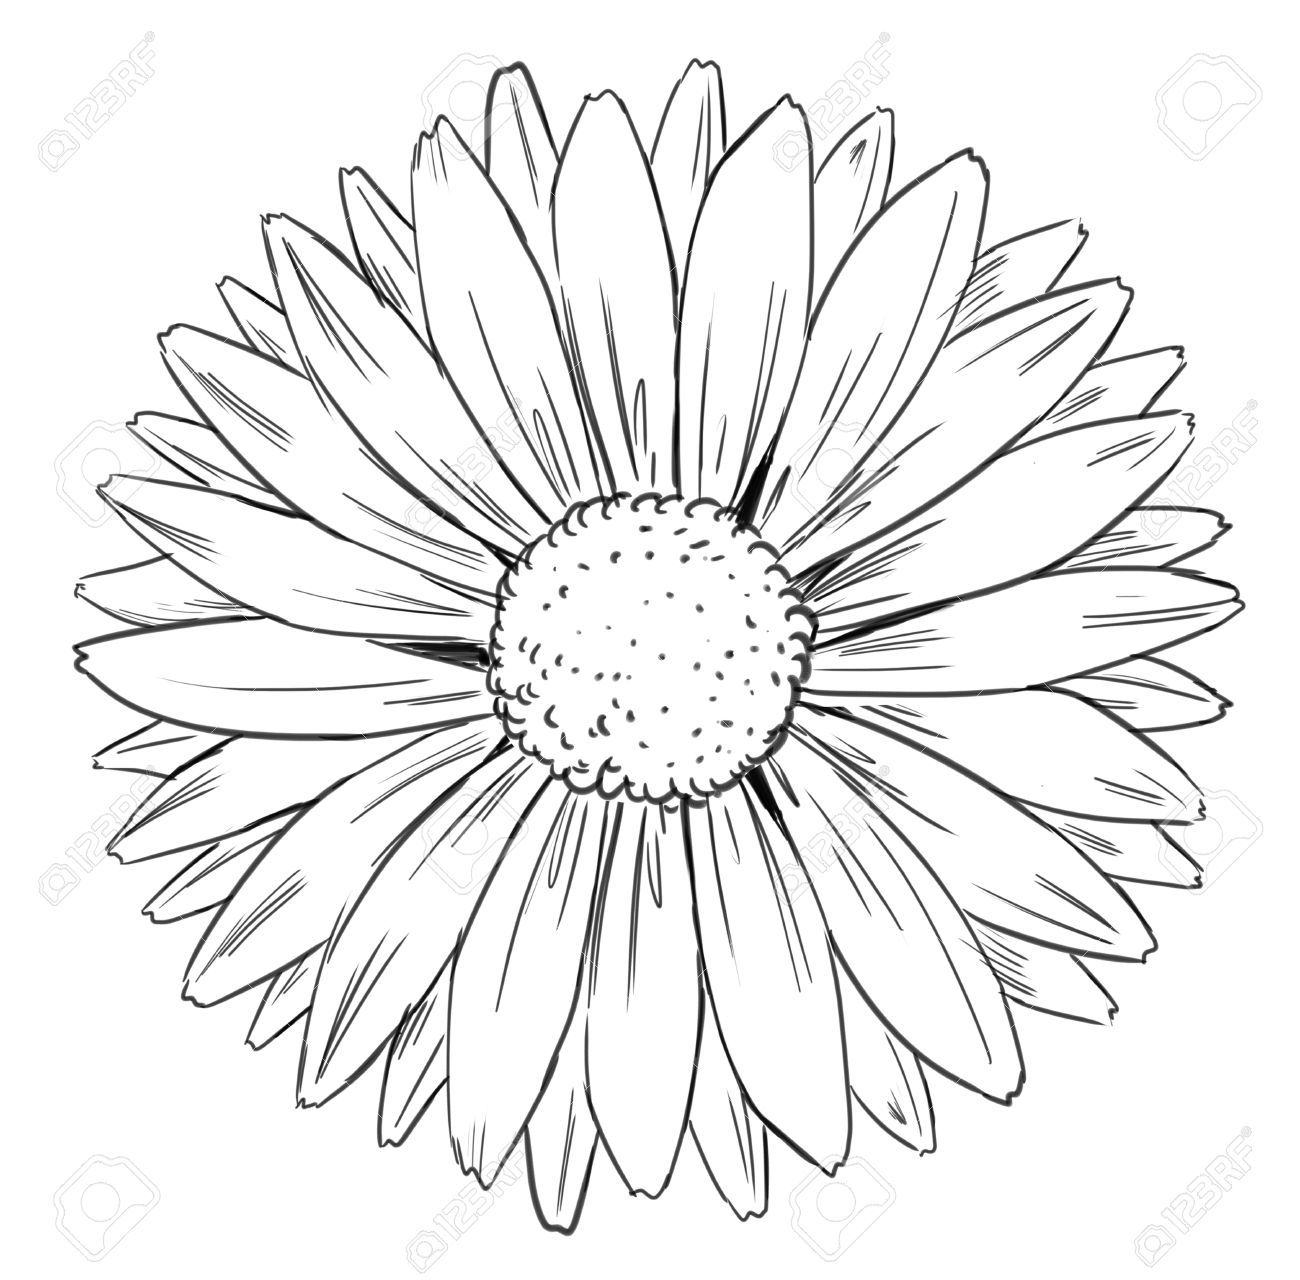 Black And White Sunflower Simple Google Search Sunflower Drawing Sunflower Sketches Flower Drawing